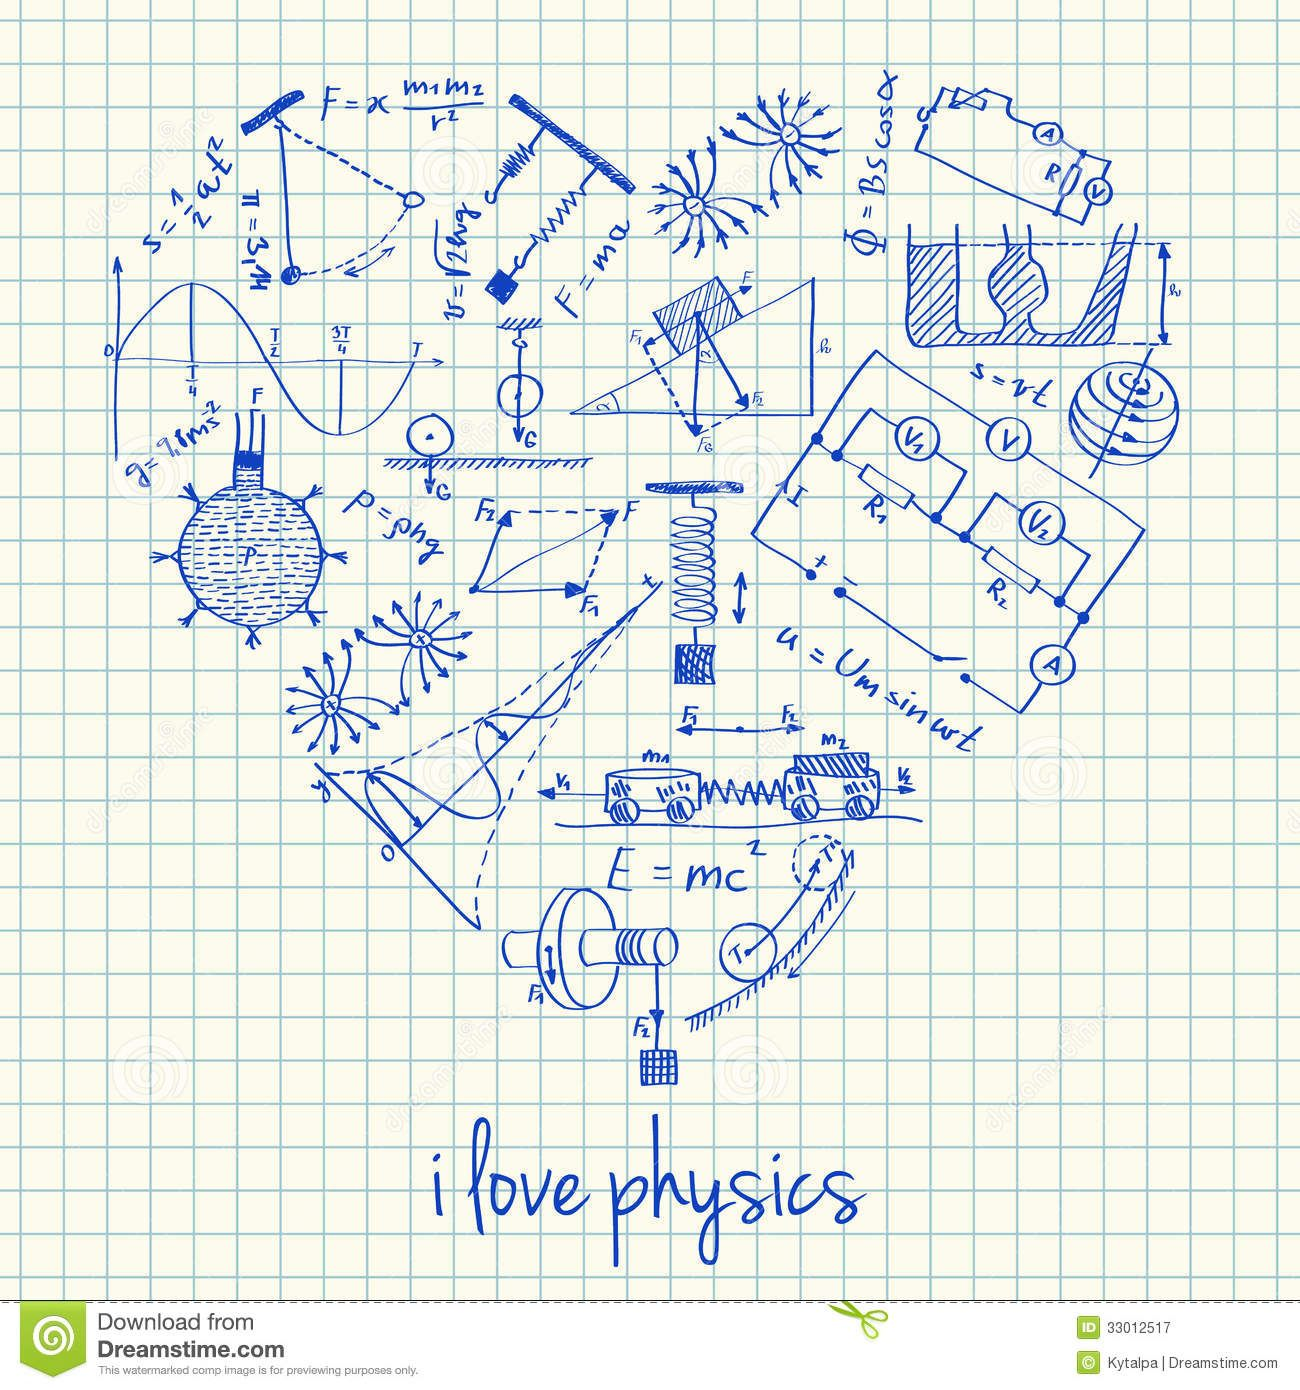 jpg royalty free library Physics drawing. Of google search sketch.